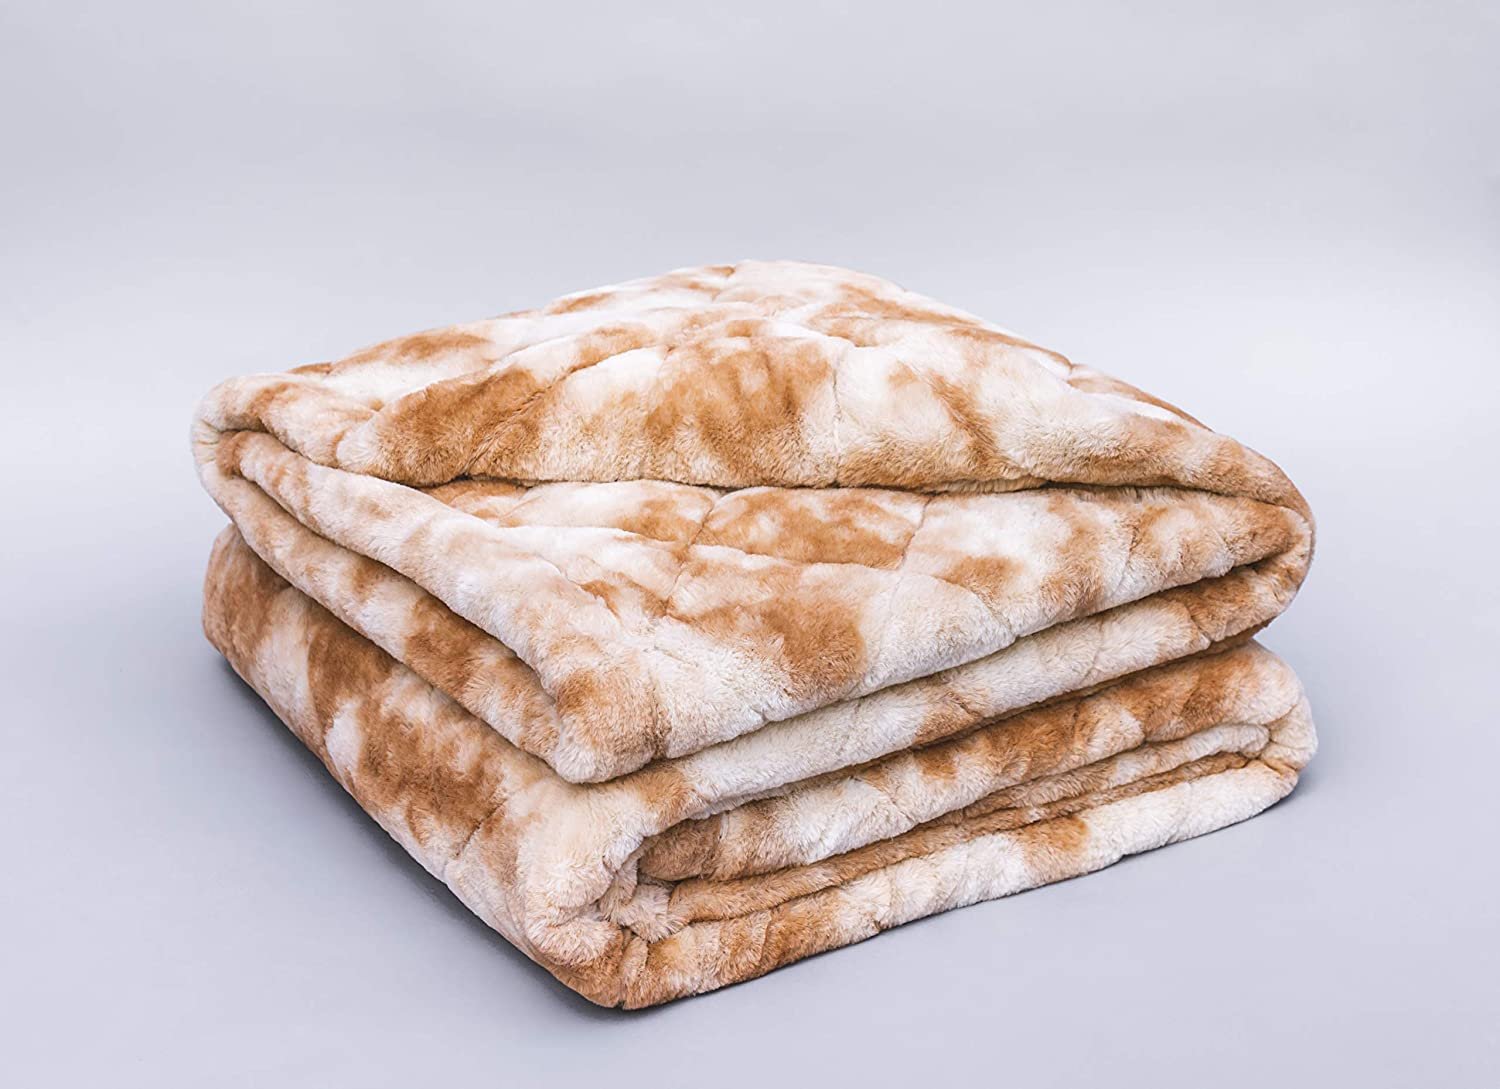 Living Room 60x80, 15 lb Faux Fur Ultra Minky Pine /& River Weighted Blanket -Elevate Your Home Get Better Rest Without Sacrificing Design | Anywhere | for D/écor on Sofa Bed